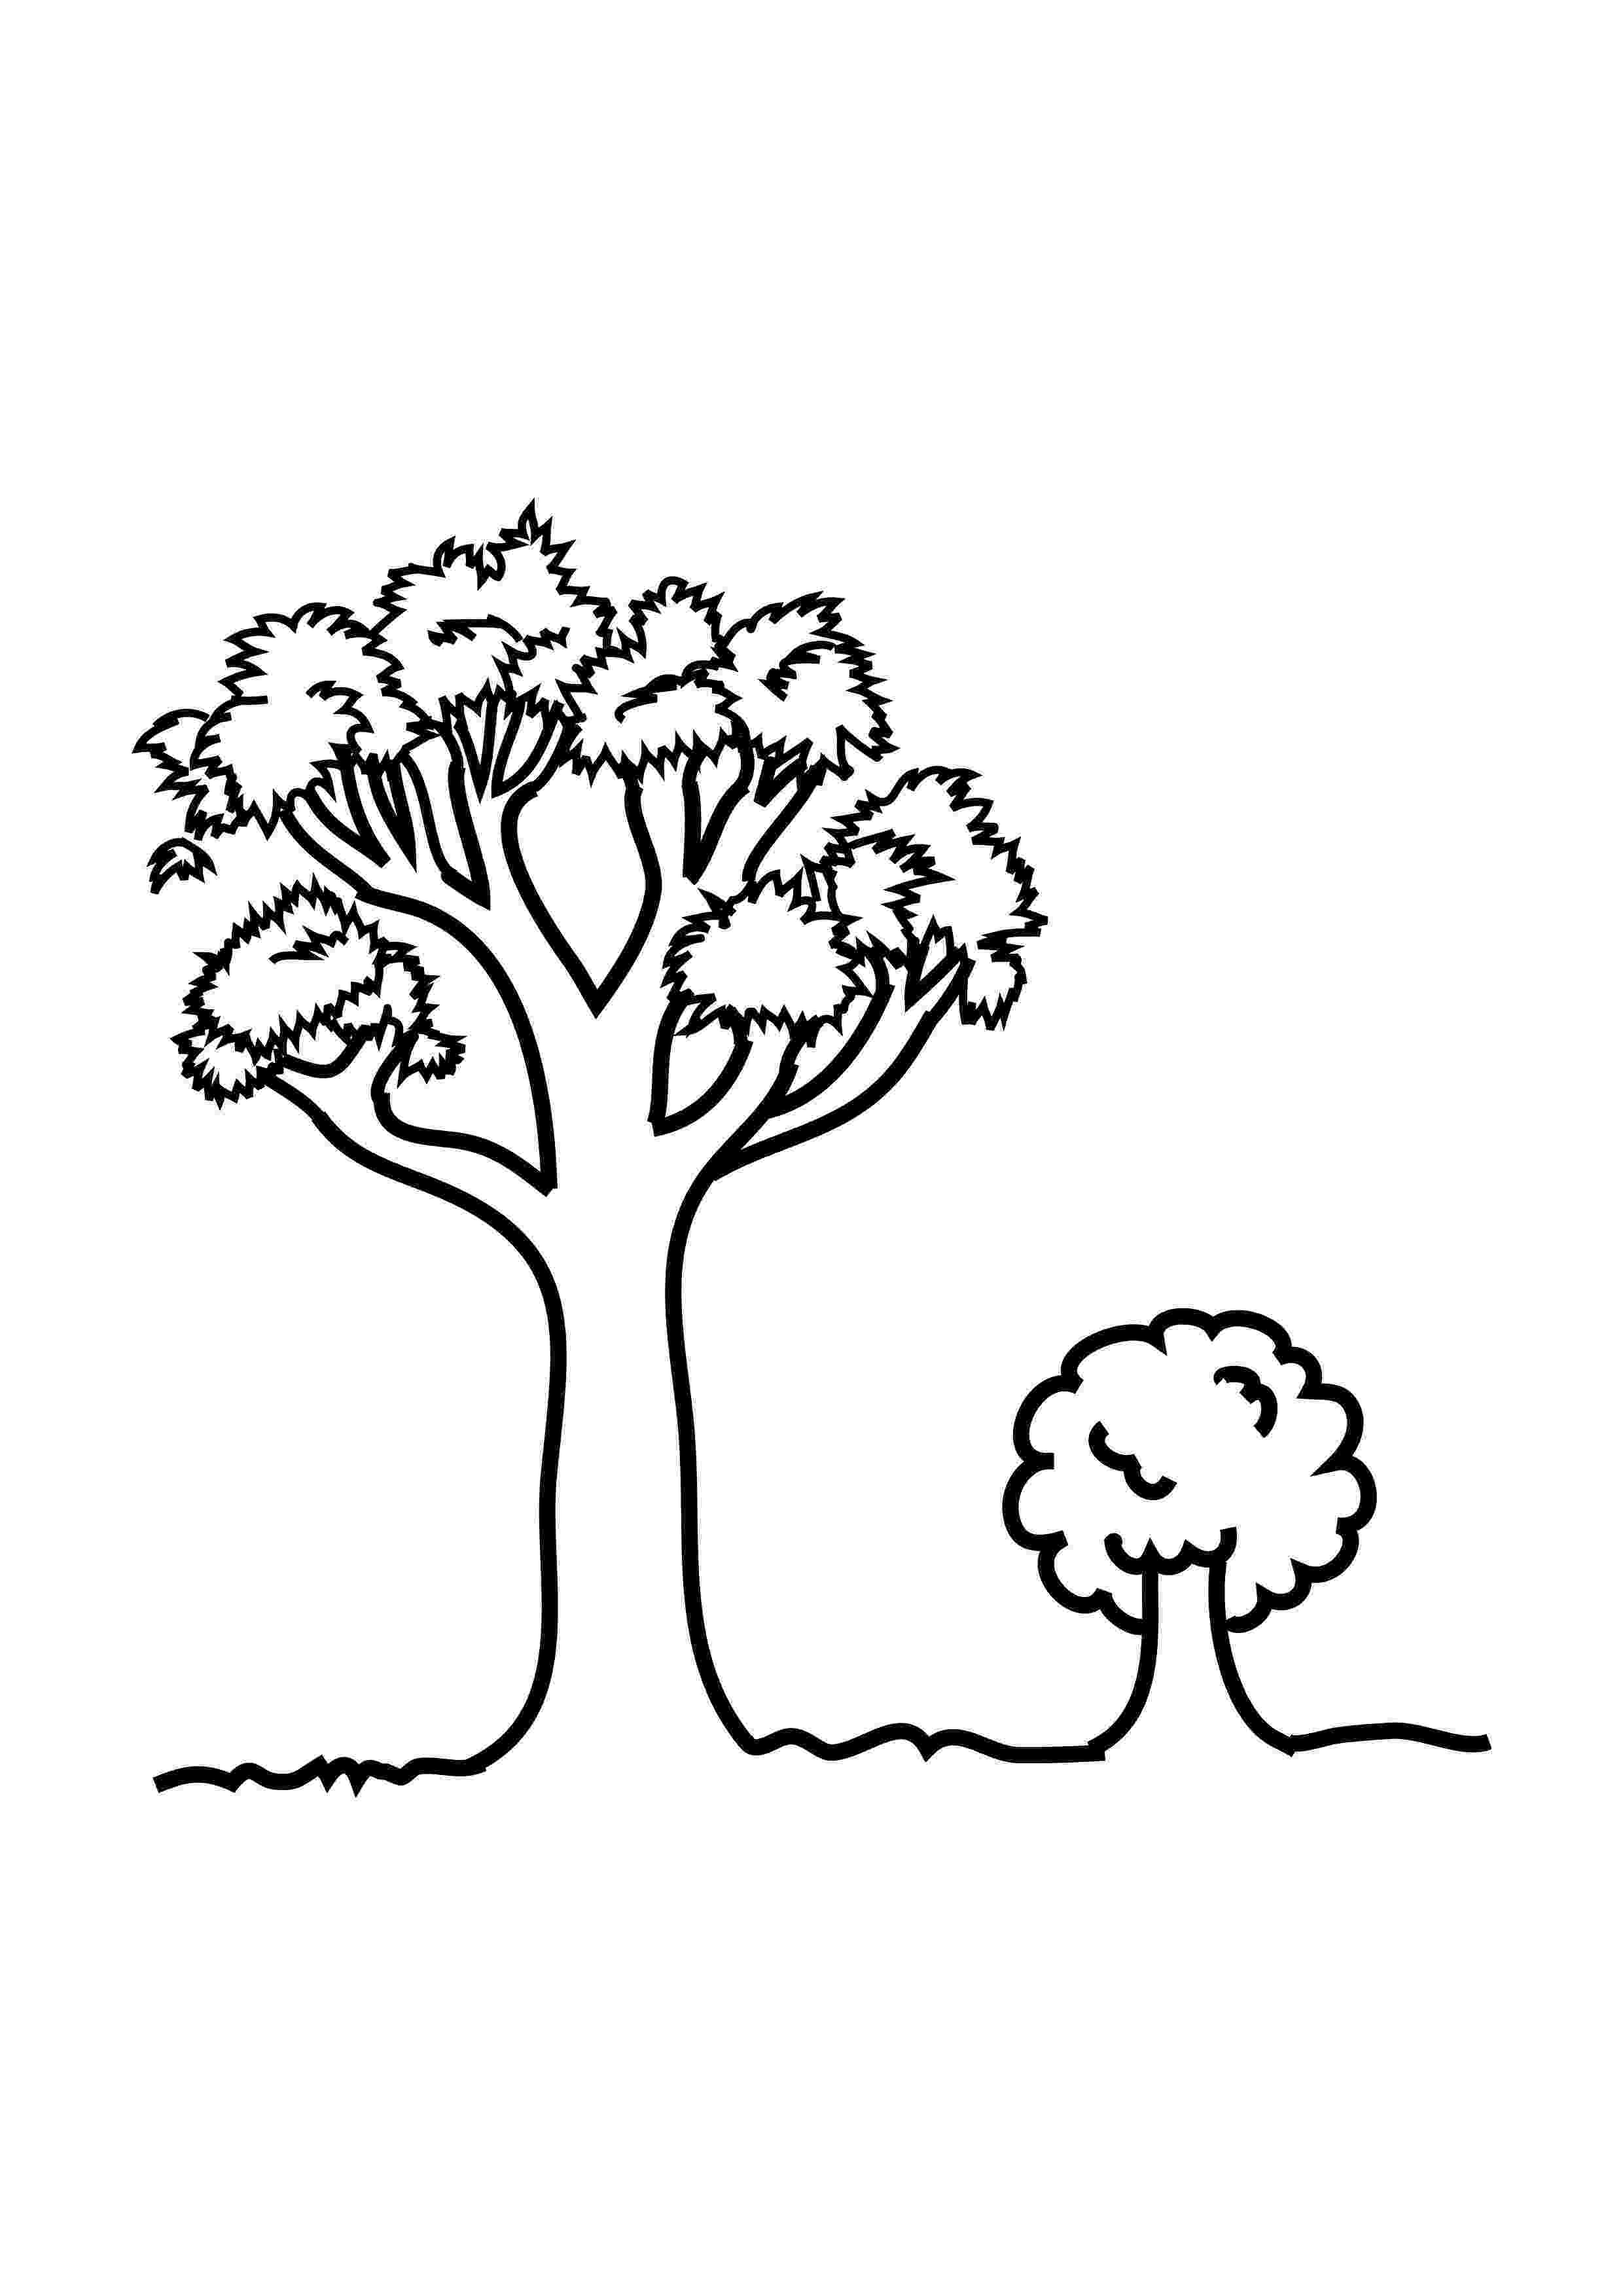 coloring pages of fruit trees tree fruitful coloring page fruit and veggie coloring fruit of coloring trees pages